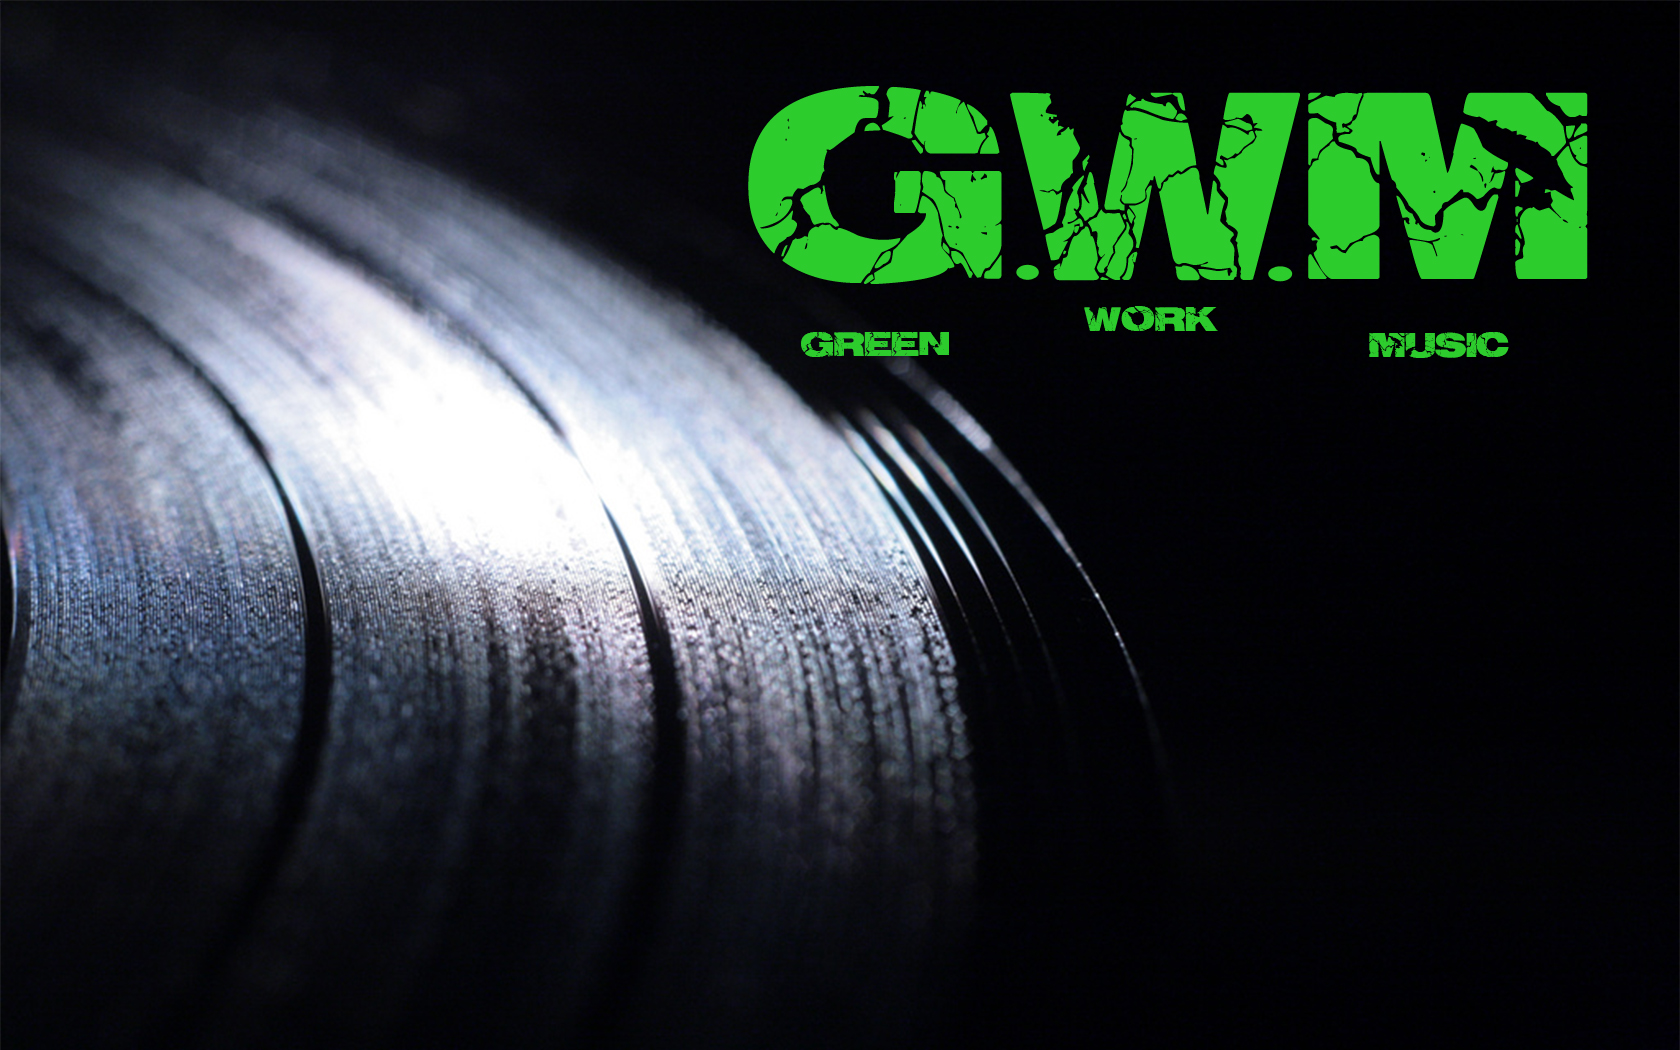 green work music